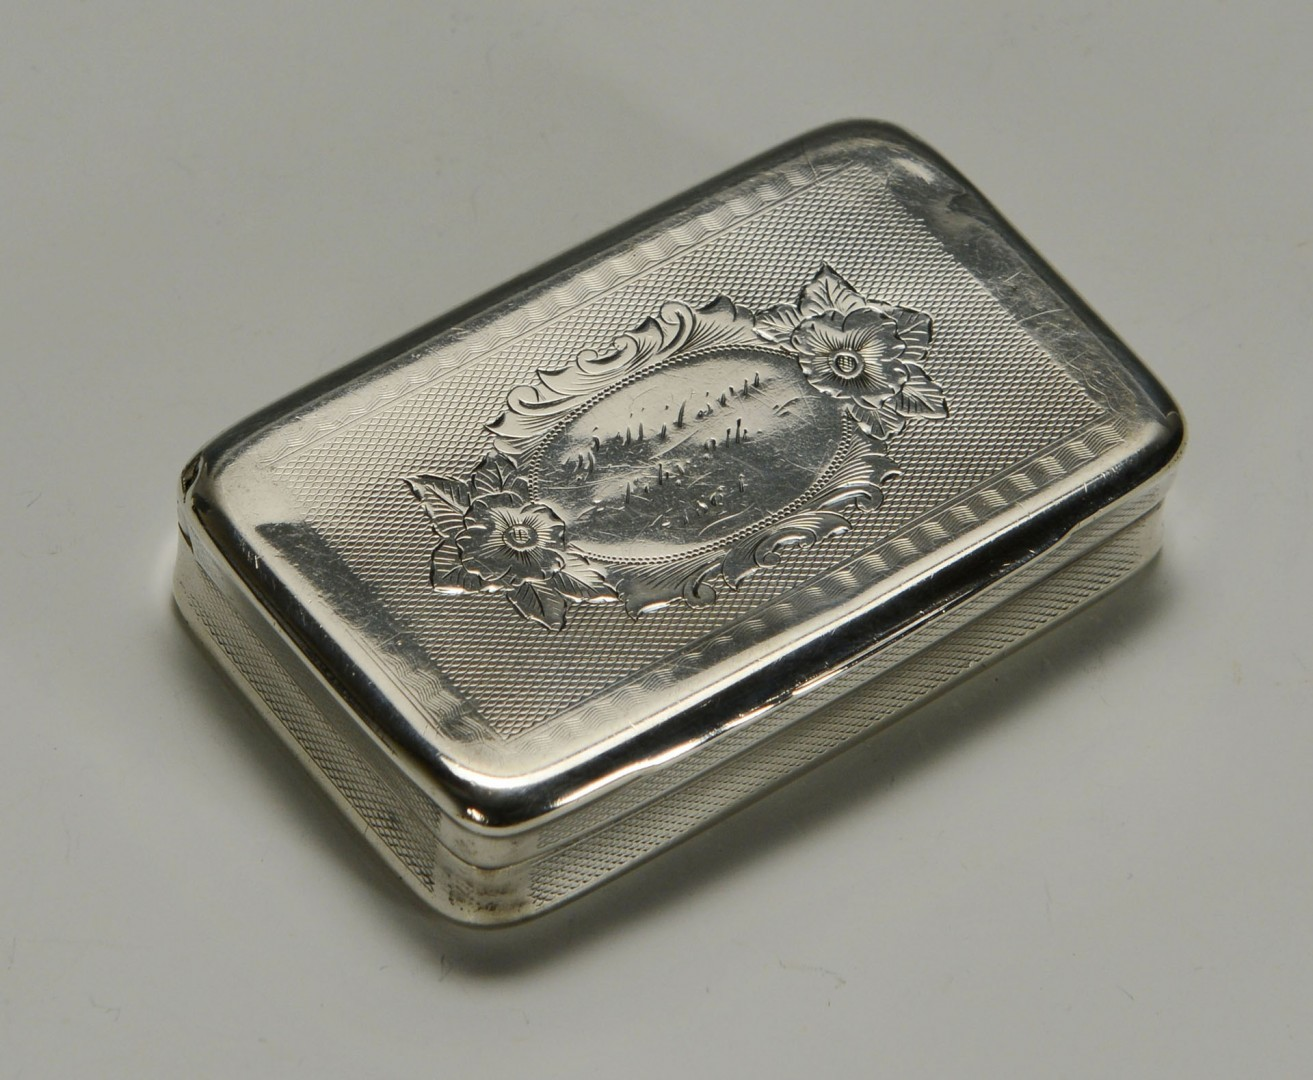 Lot 88: Coin silver snuff box, dated 1864